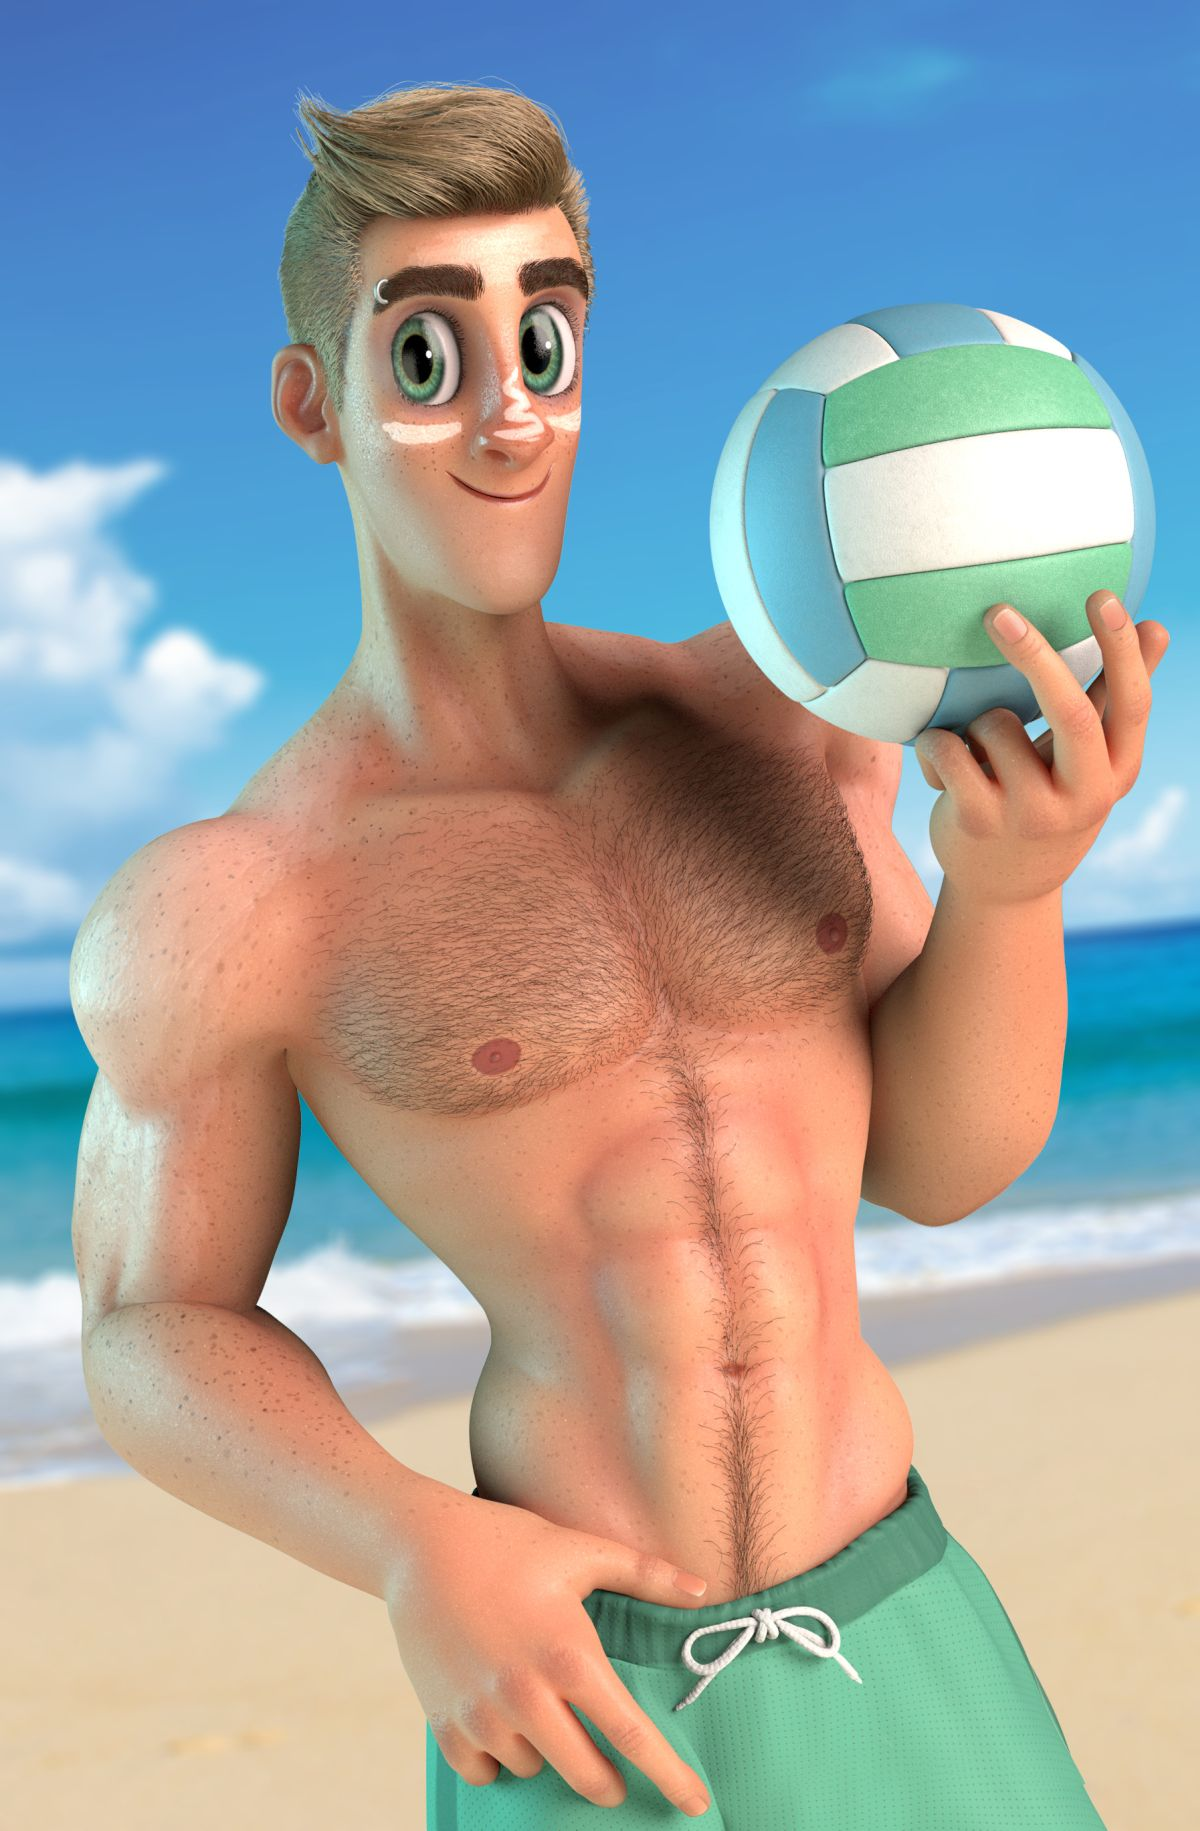 3d model character design randy beach by alfonso petersen